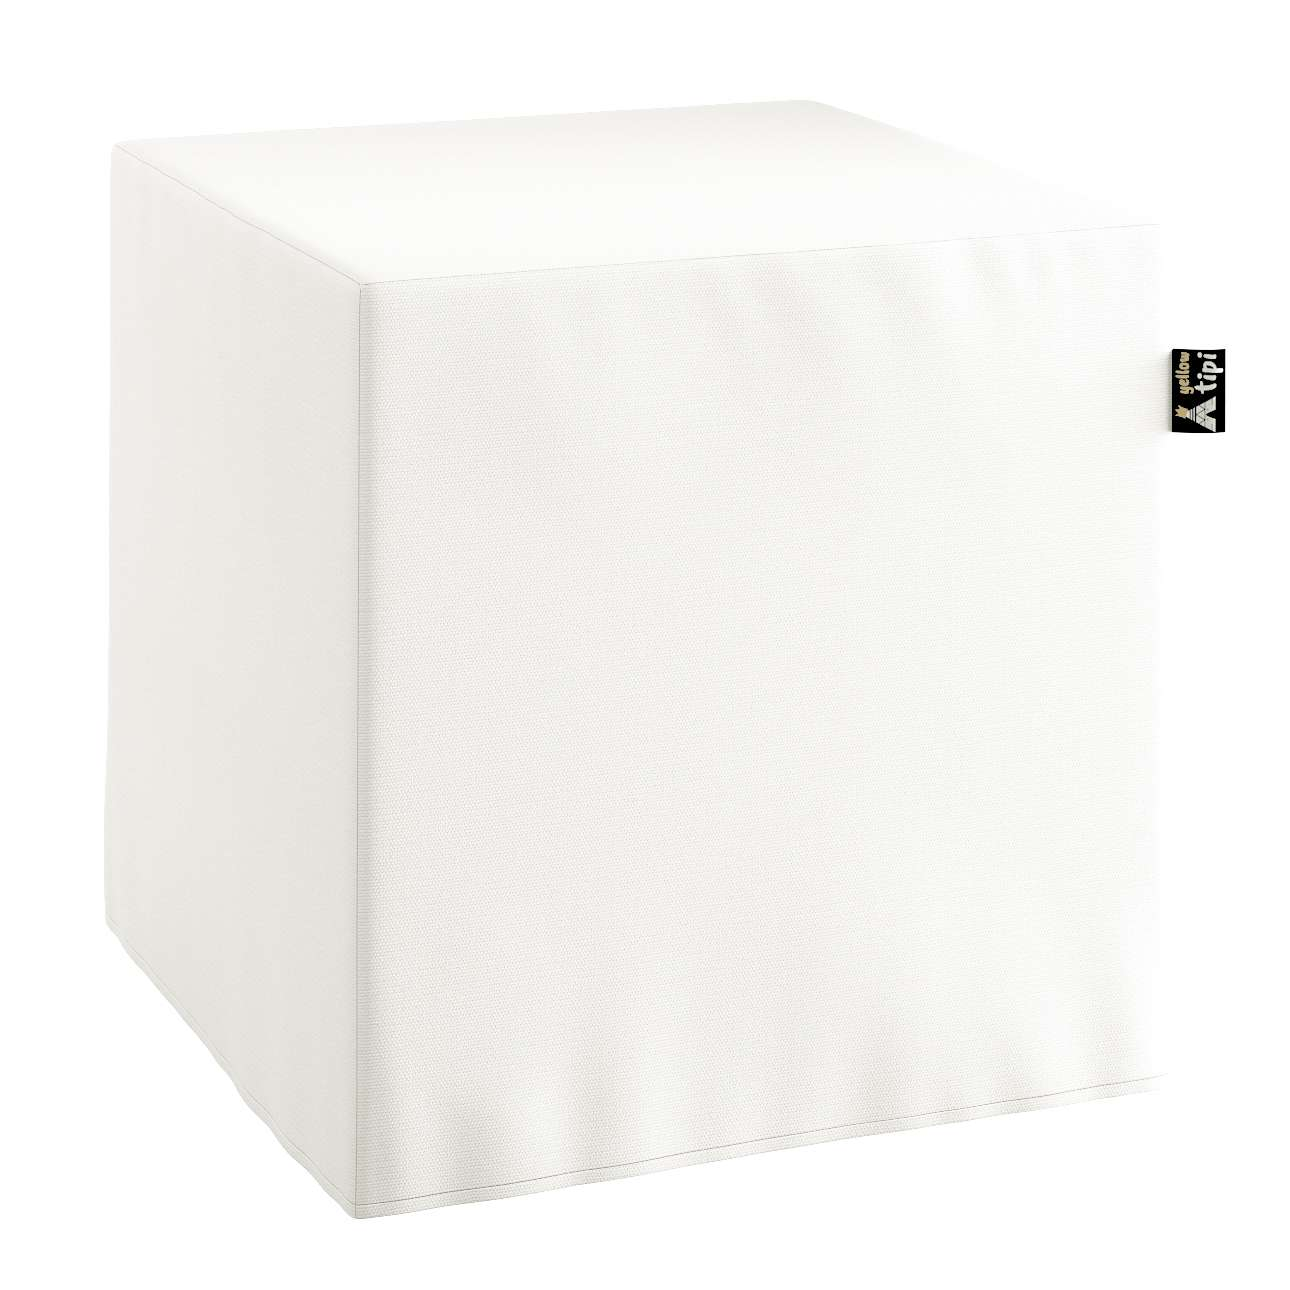 Nano cube pouf in collection Cotton Story, fabric: 702-34